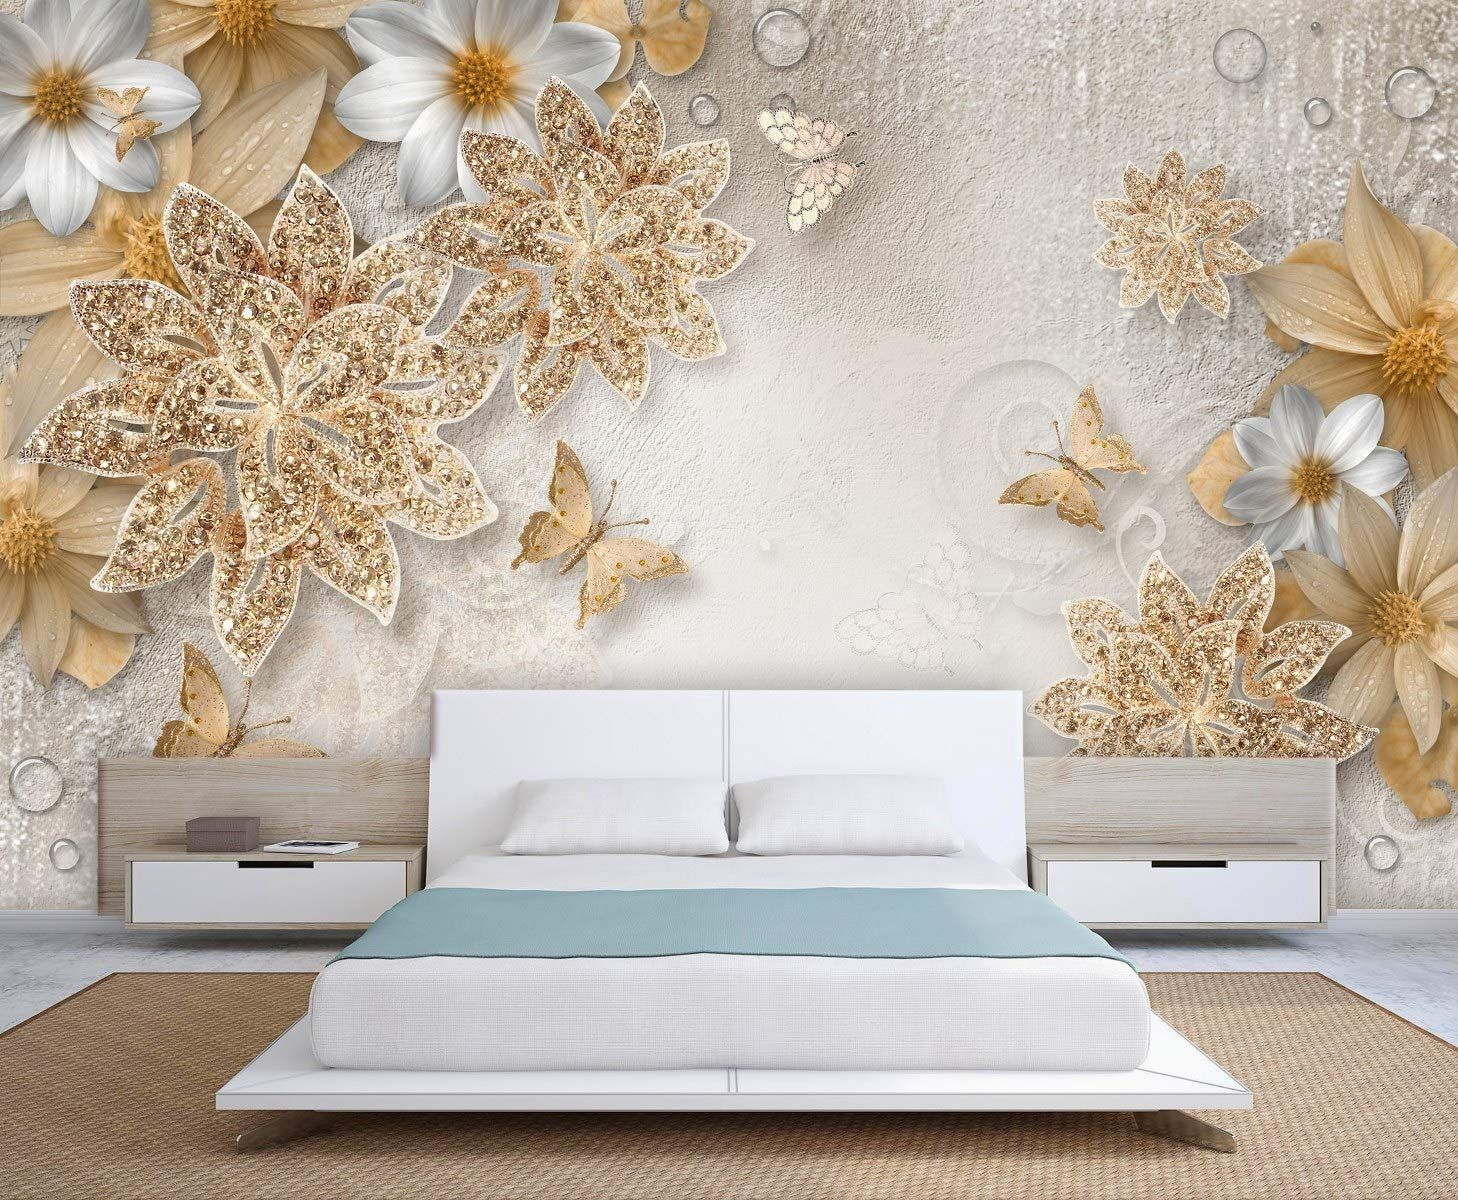 3d Golden White Flowers Wallpaper Beddingroom Study Tvbackground Hotels Bar Offices Wallpaper Decor Wallpaper Online Living Room Designs